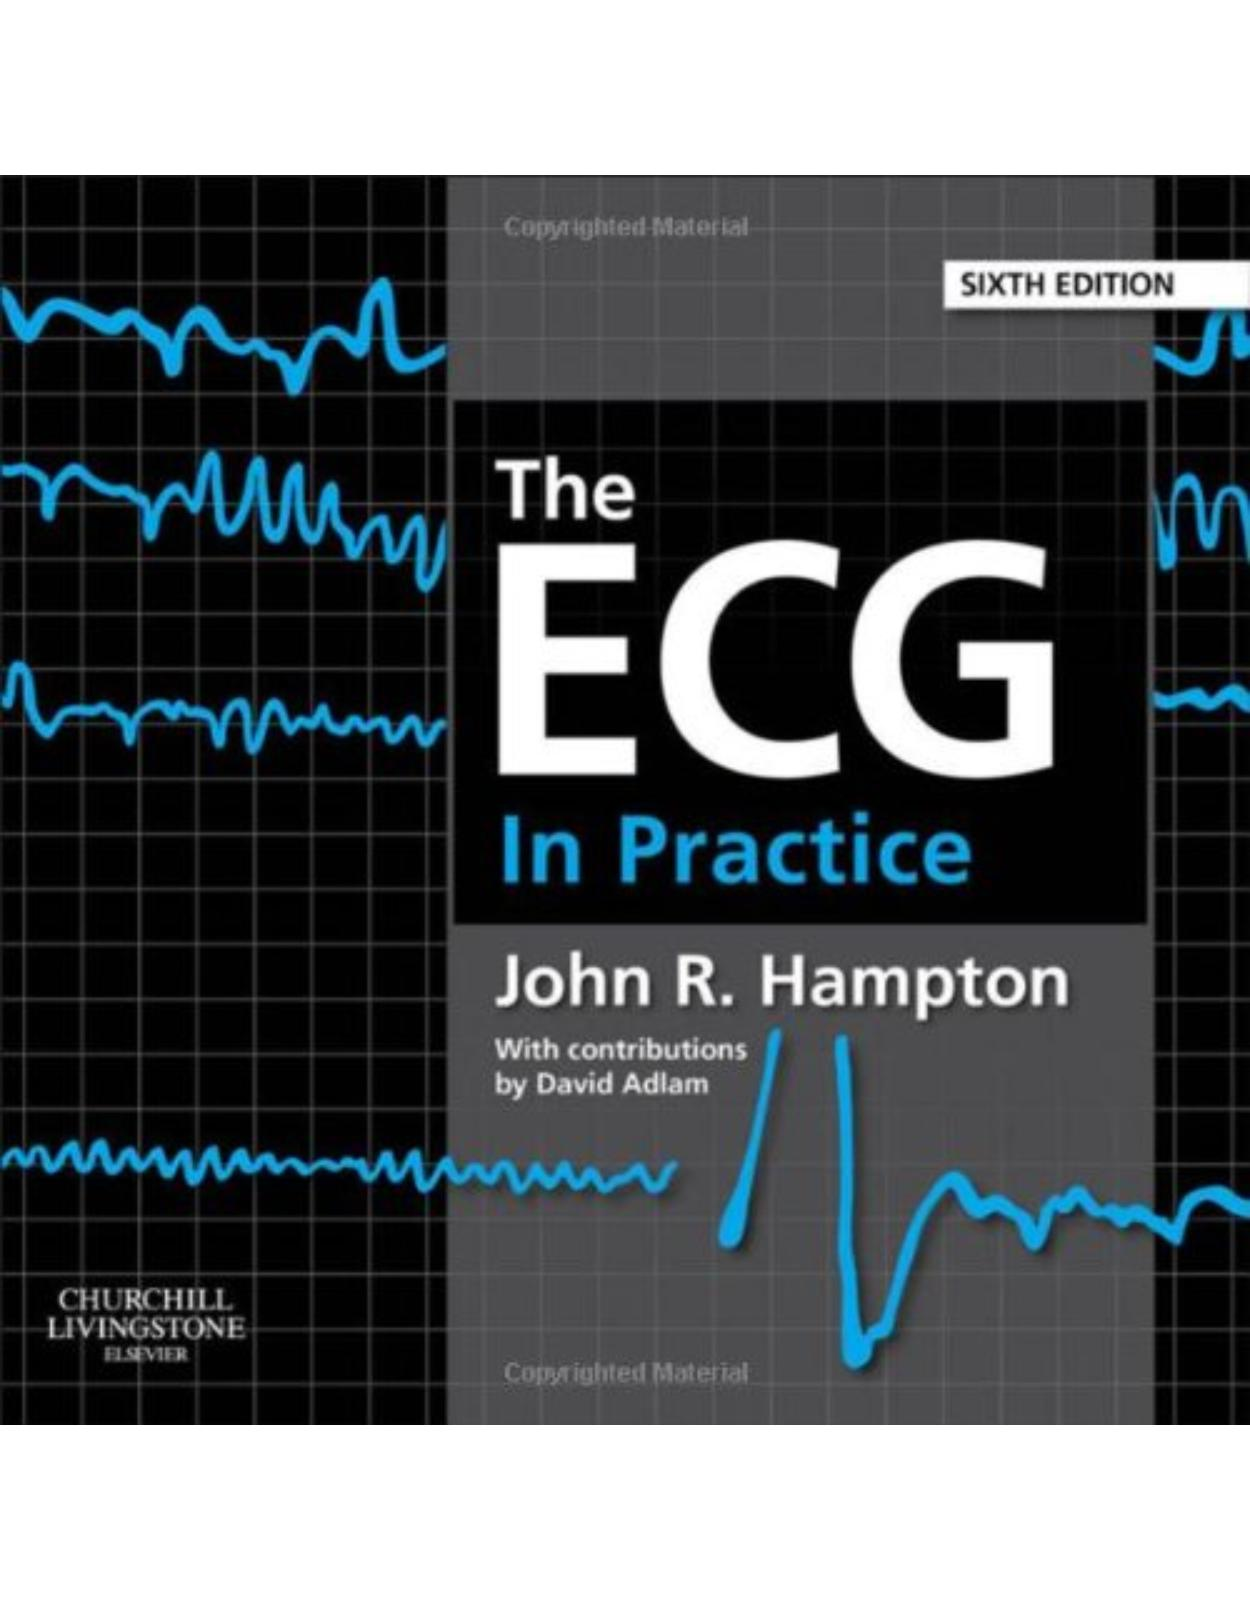 The ECG In Practice, 6th Edition